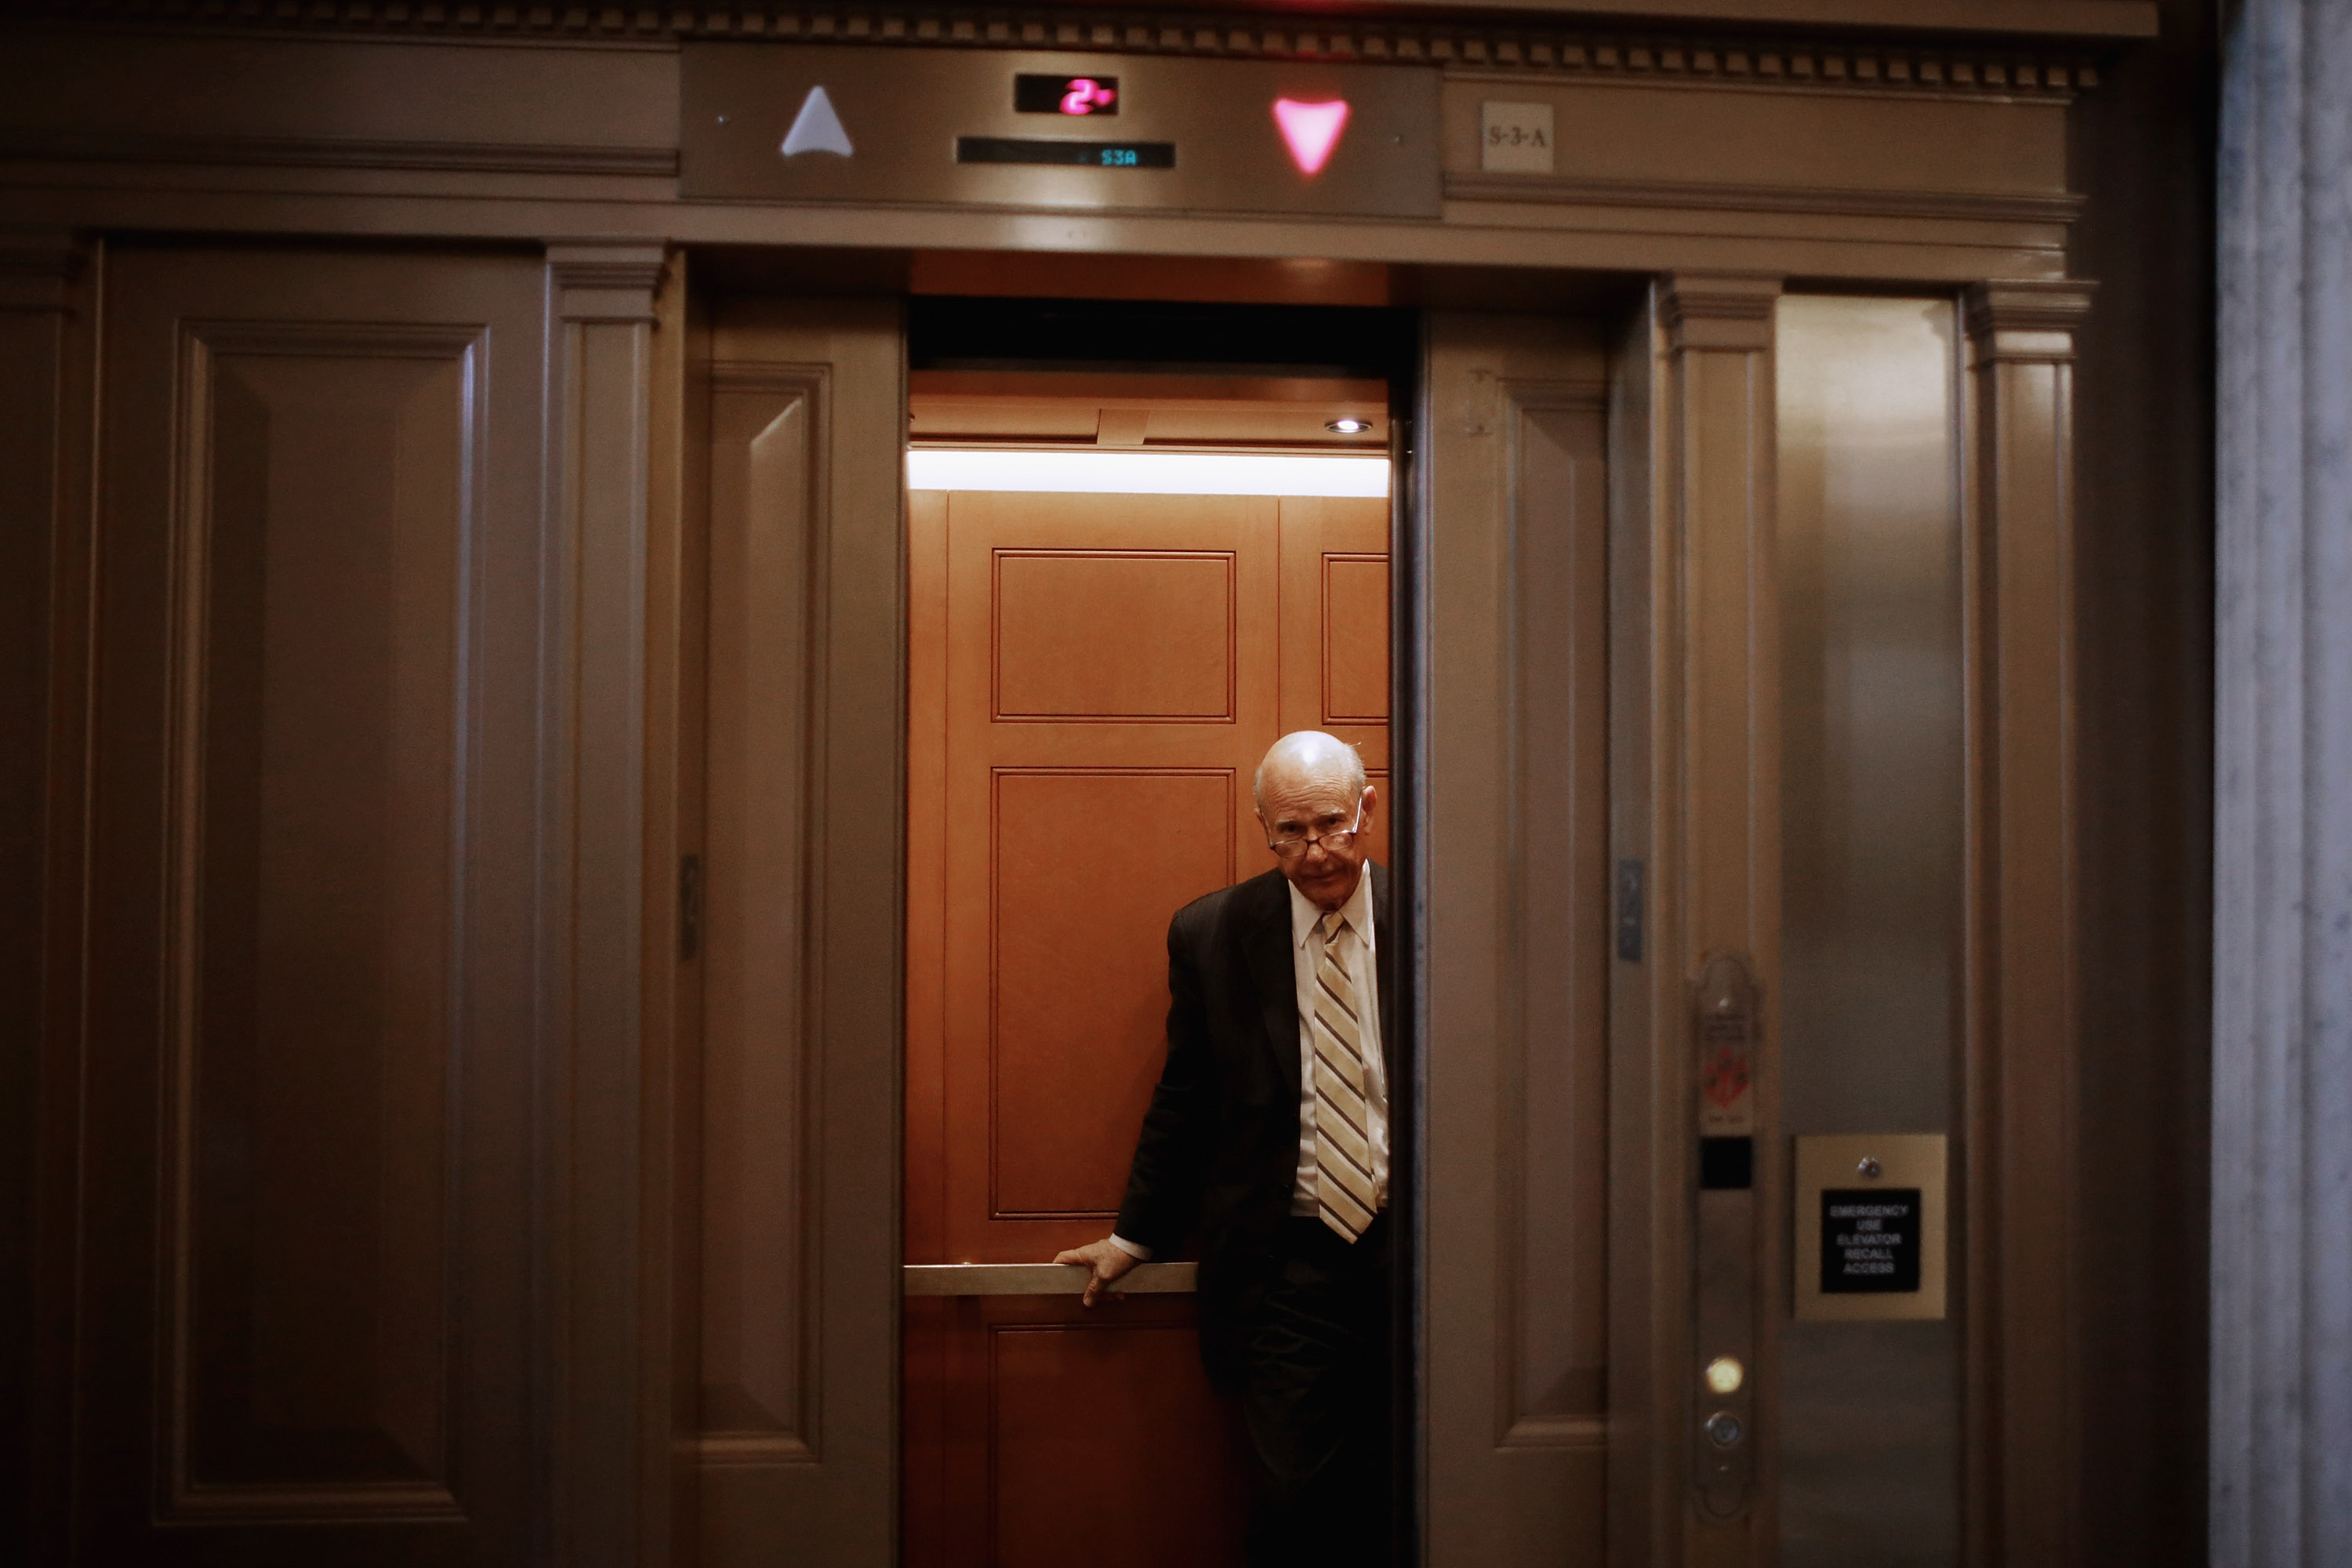 WASHINGTON, DC - NOVEMBER 05:  Sen. Pat Roberts (R-KS) takes an elevator after attending the weekly Senate Republican Caucus policy luncheon at the U.S. Capitol November 5, 2013 in Washington, DC. (Photo by Chip Somodevilla/Getty Images)